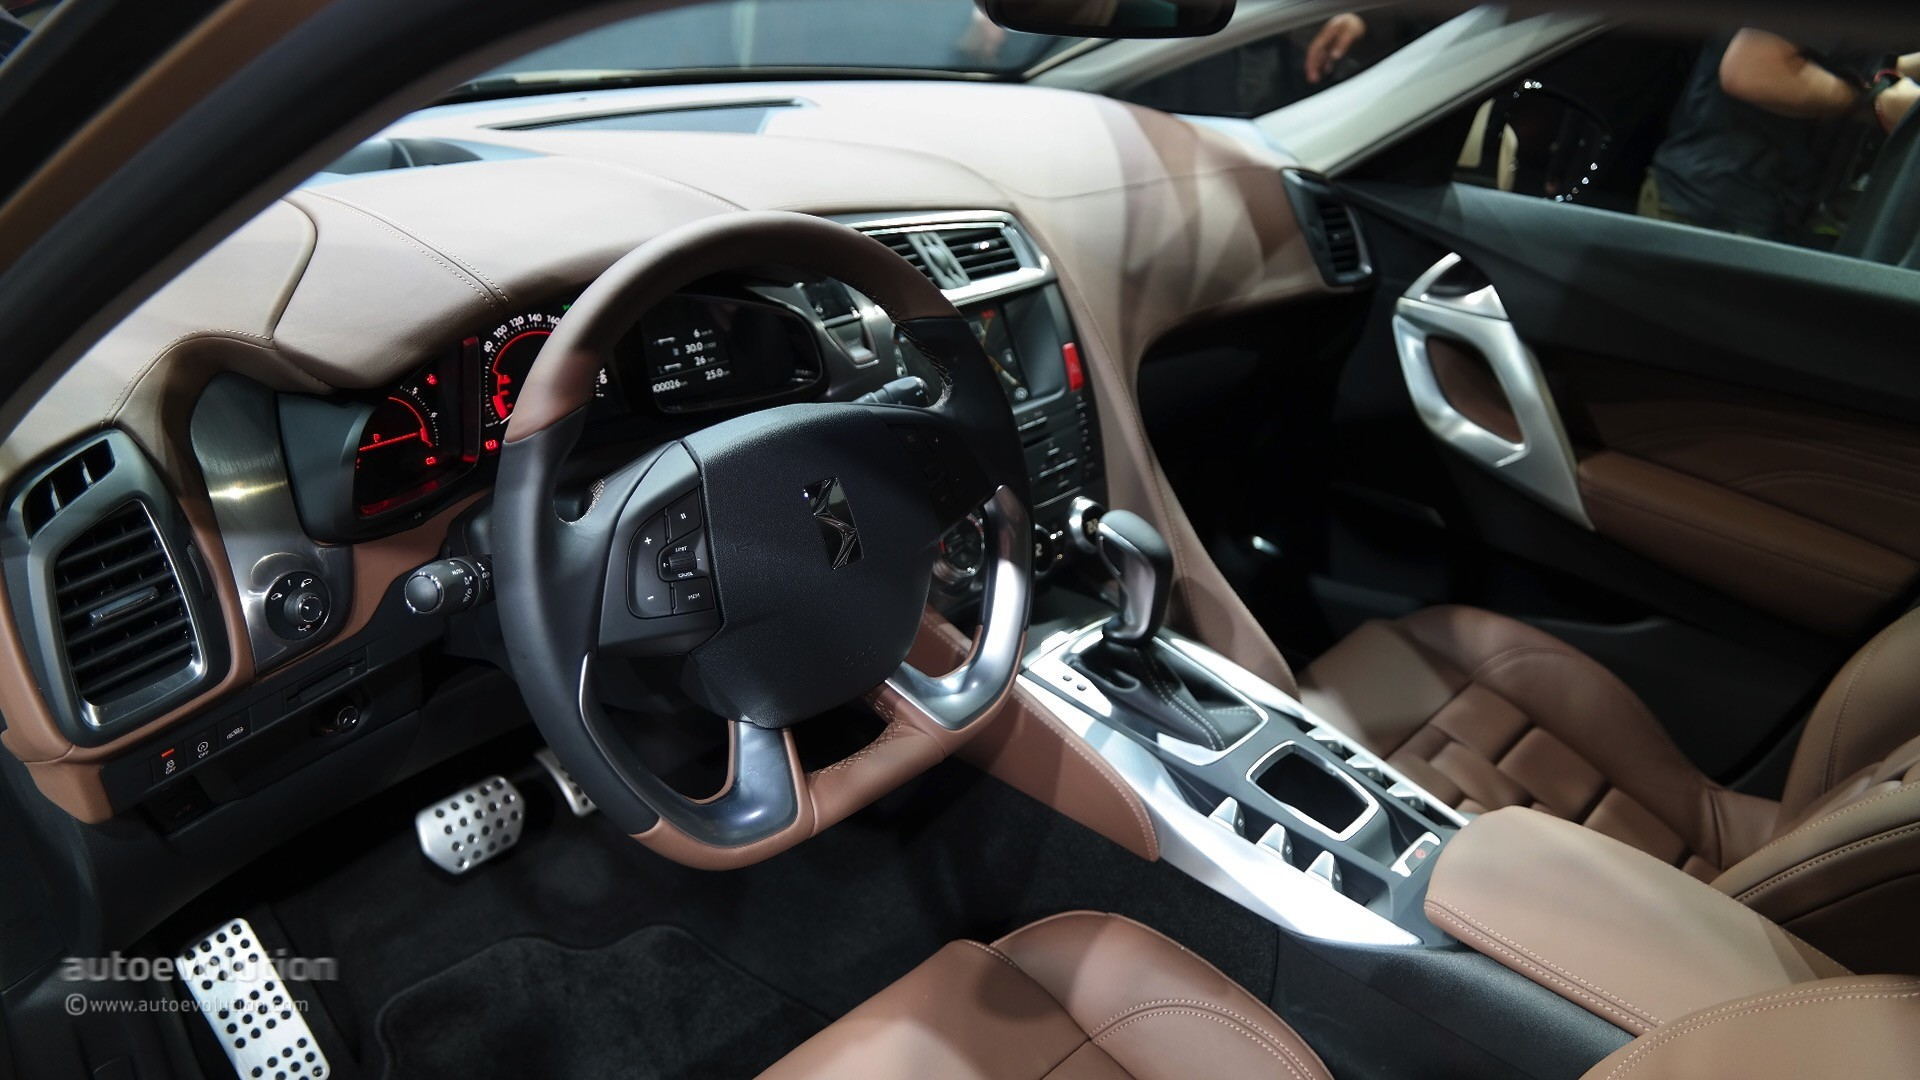 2016 citroen ds5 brings french luxury redefined in shanghai autoevolution. Black Bedroom Furniture Sets. Home Design Ideas